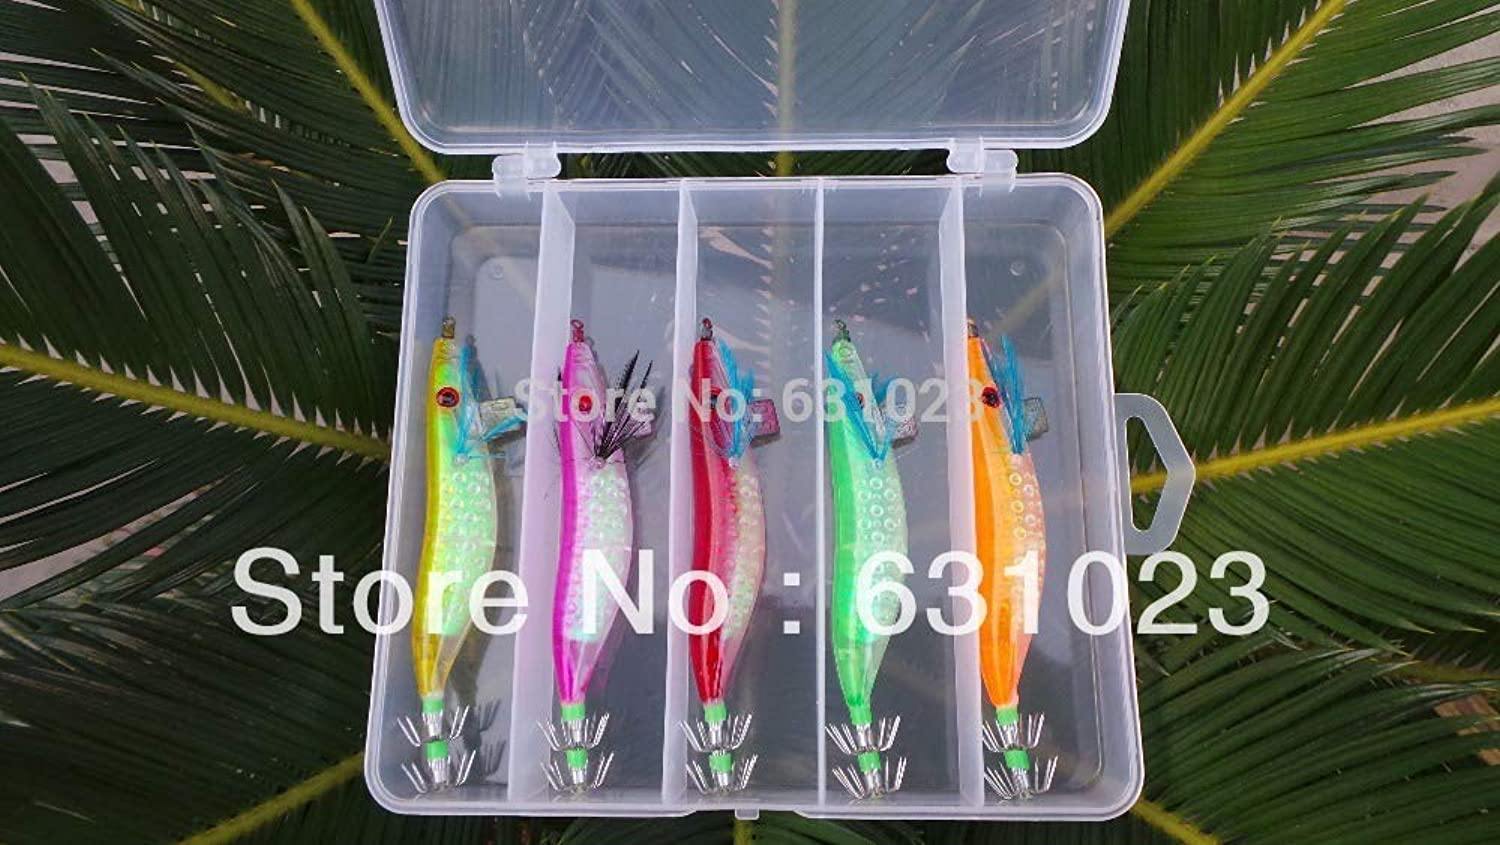 Generic MR Octopus 10pcs Fishing Lure,Squid jig,Squid Hook, 3.0  11.5cm,16g,Packed with a Box.Five Colour Mixed.